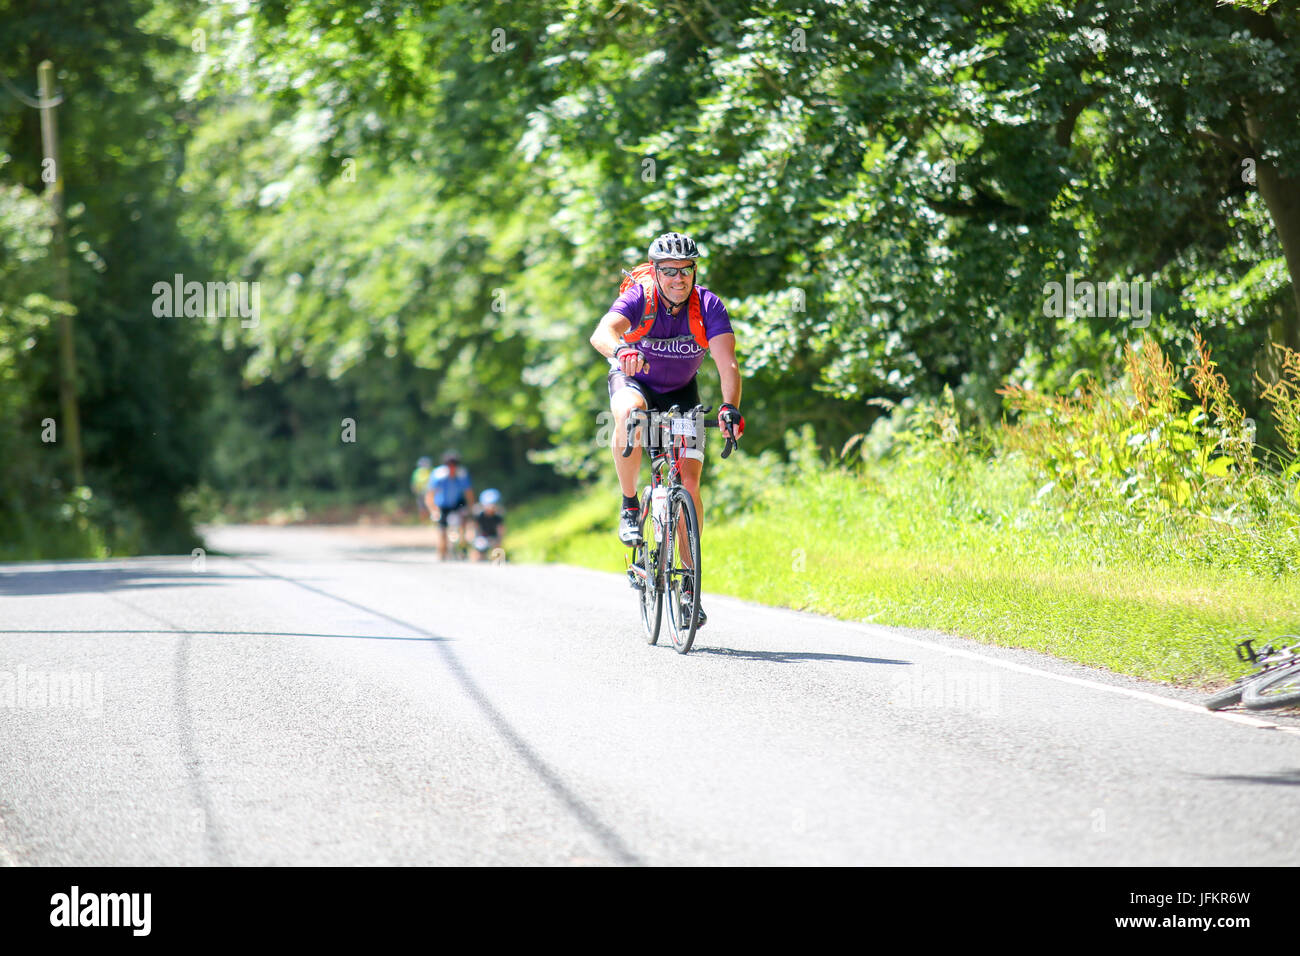 Elmdon, Essex. UK. 2nd July, 2017. Cyclists on the London to Cambridge cycle ride pass through the Essex village Stock Photo